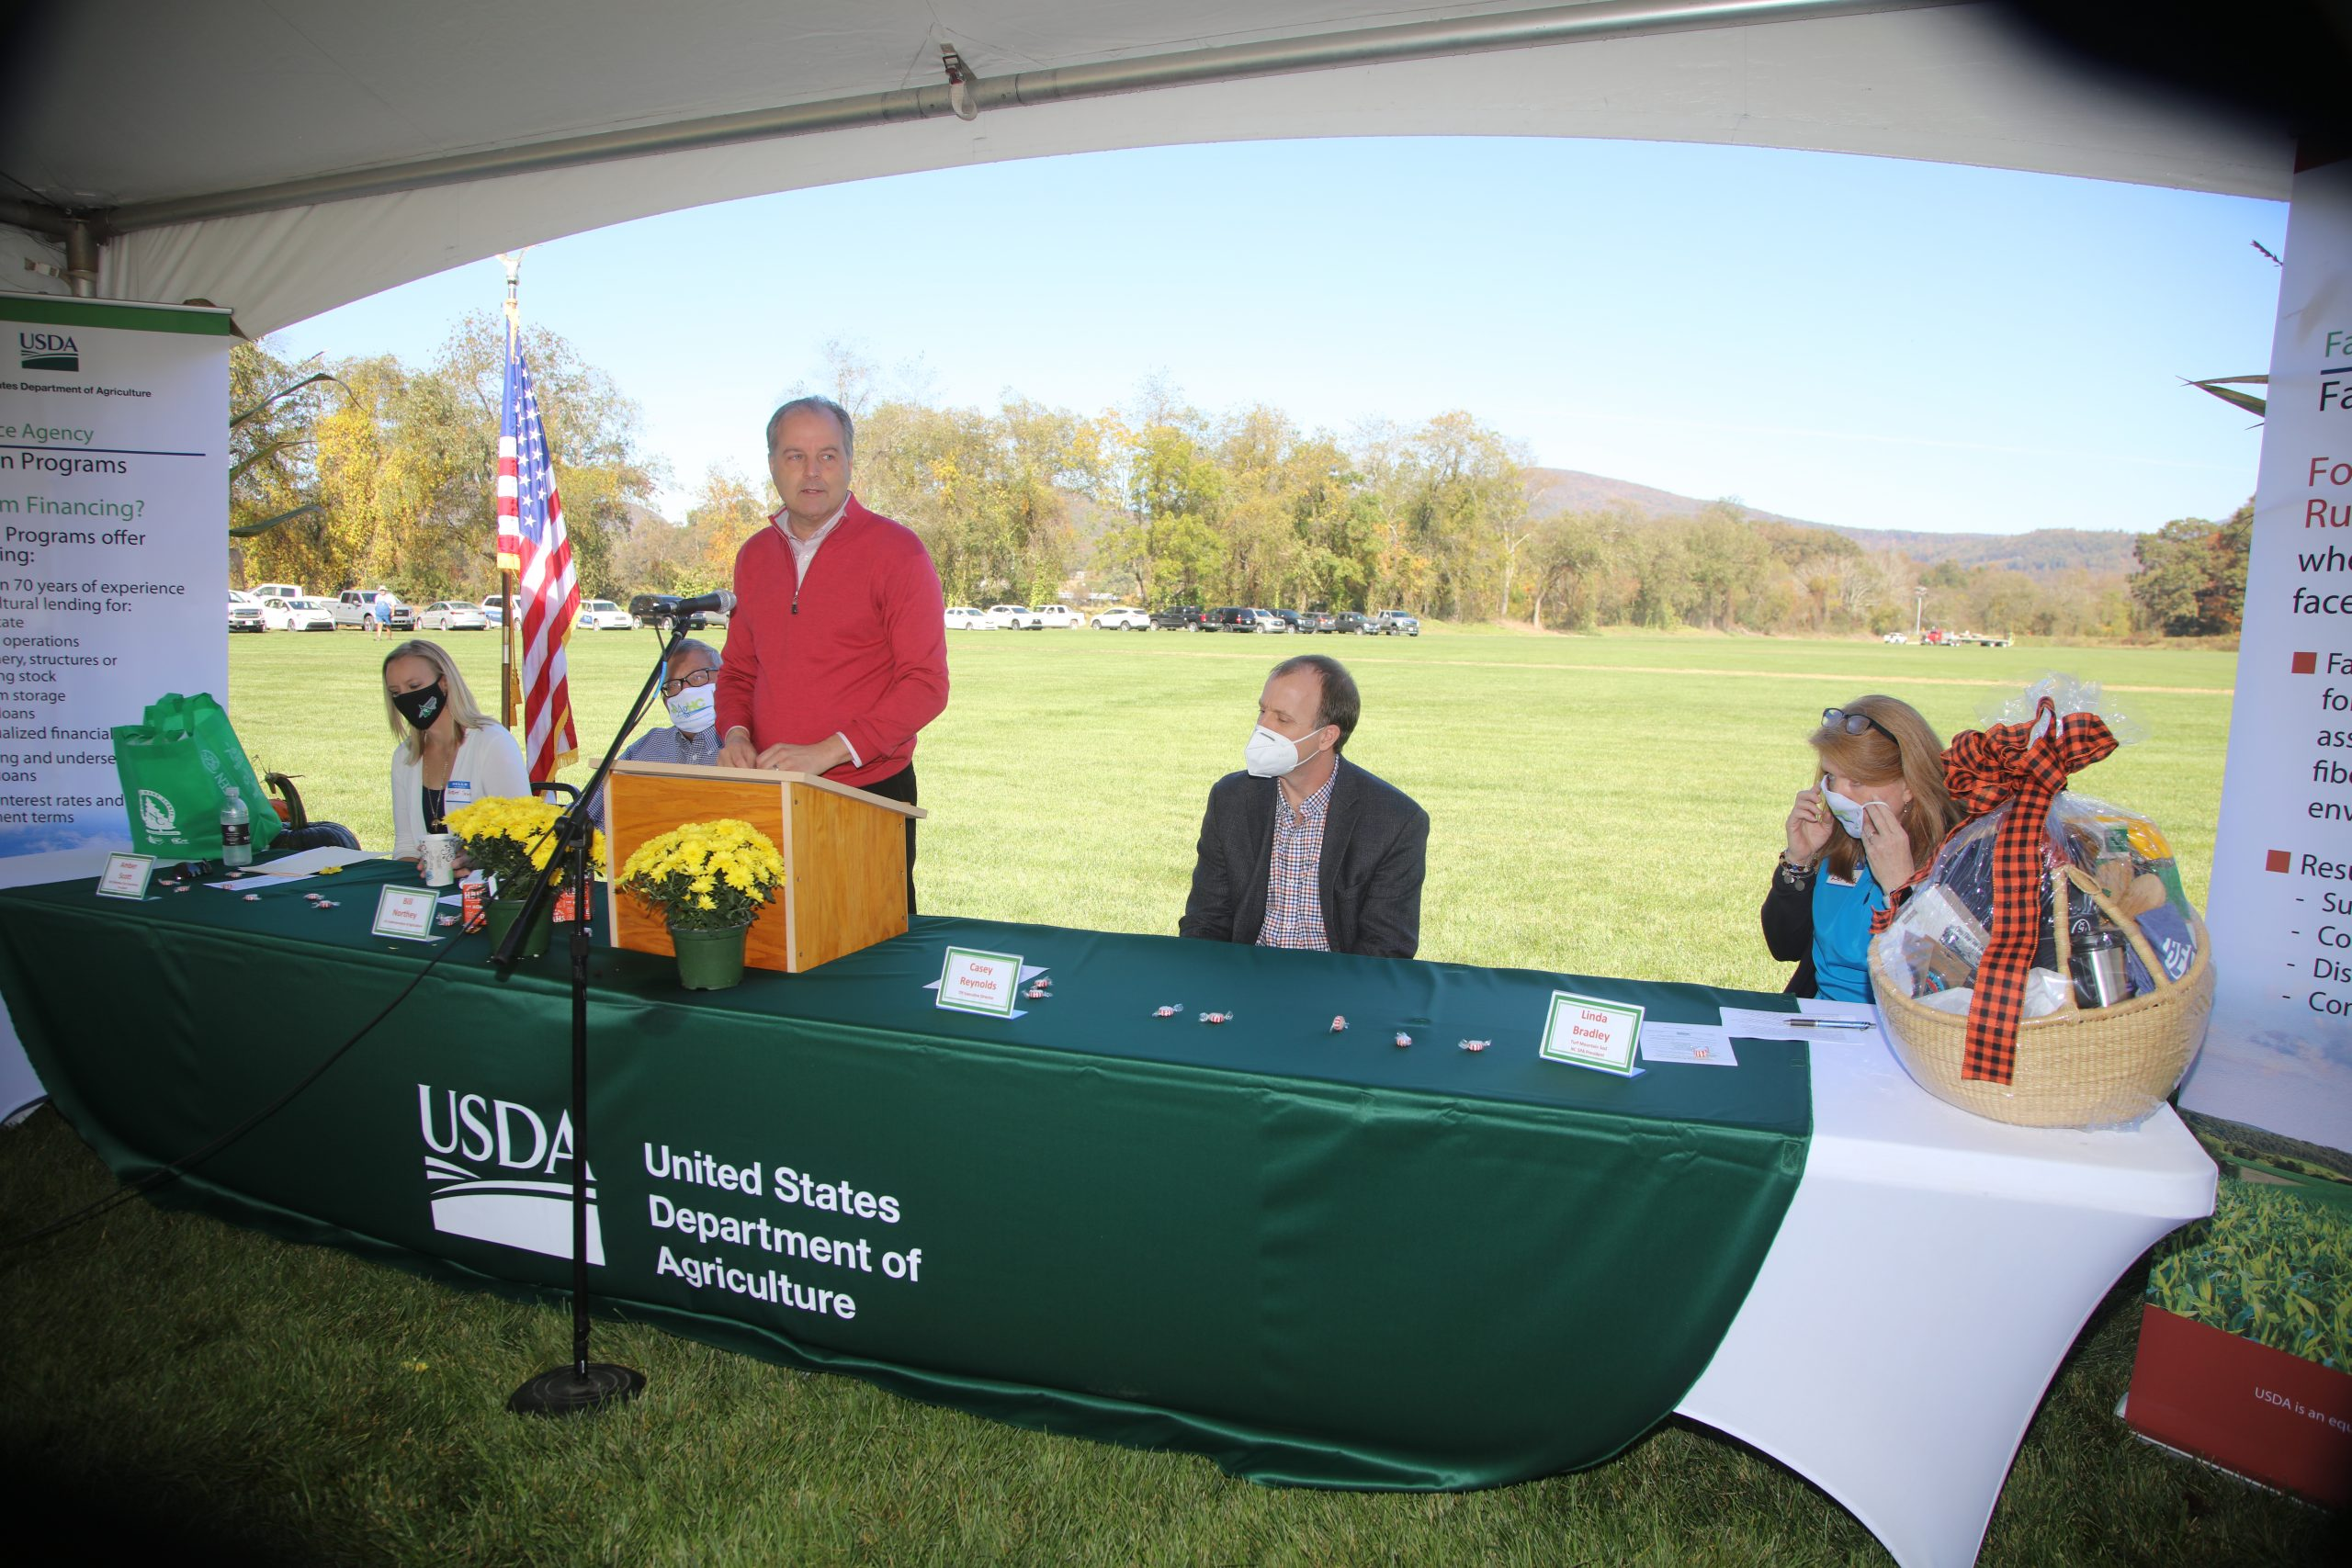 USDA Under Secretary Discusses Covid Impacts on Farms